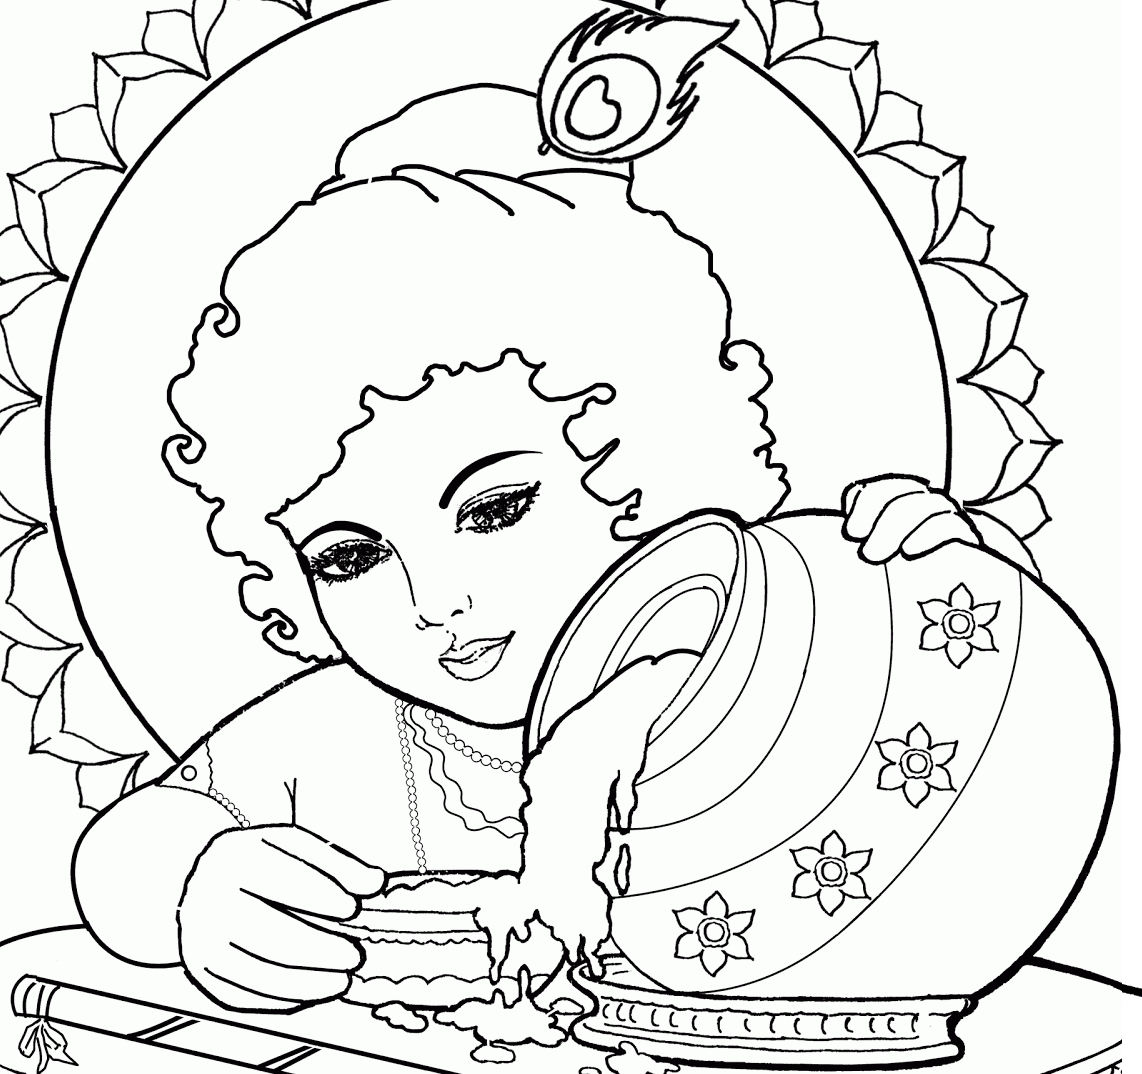 drawing coloring pages - lord baby krishna coloring drawing free